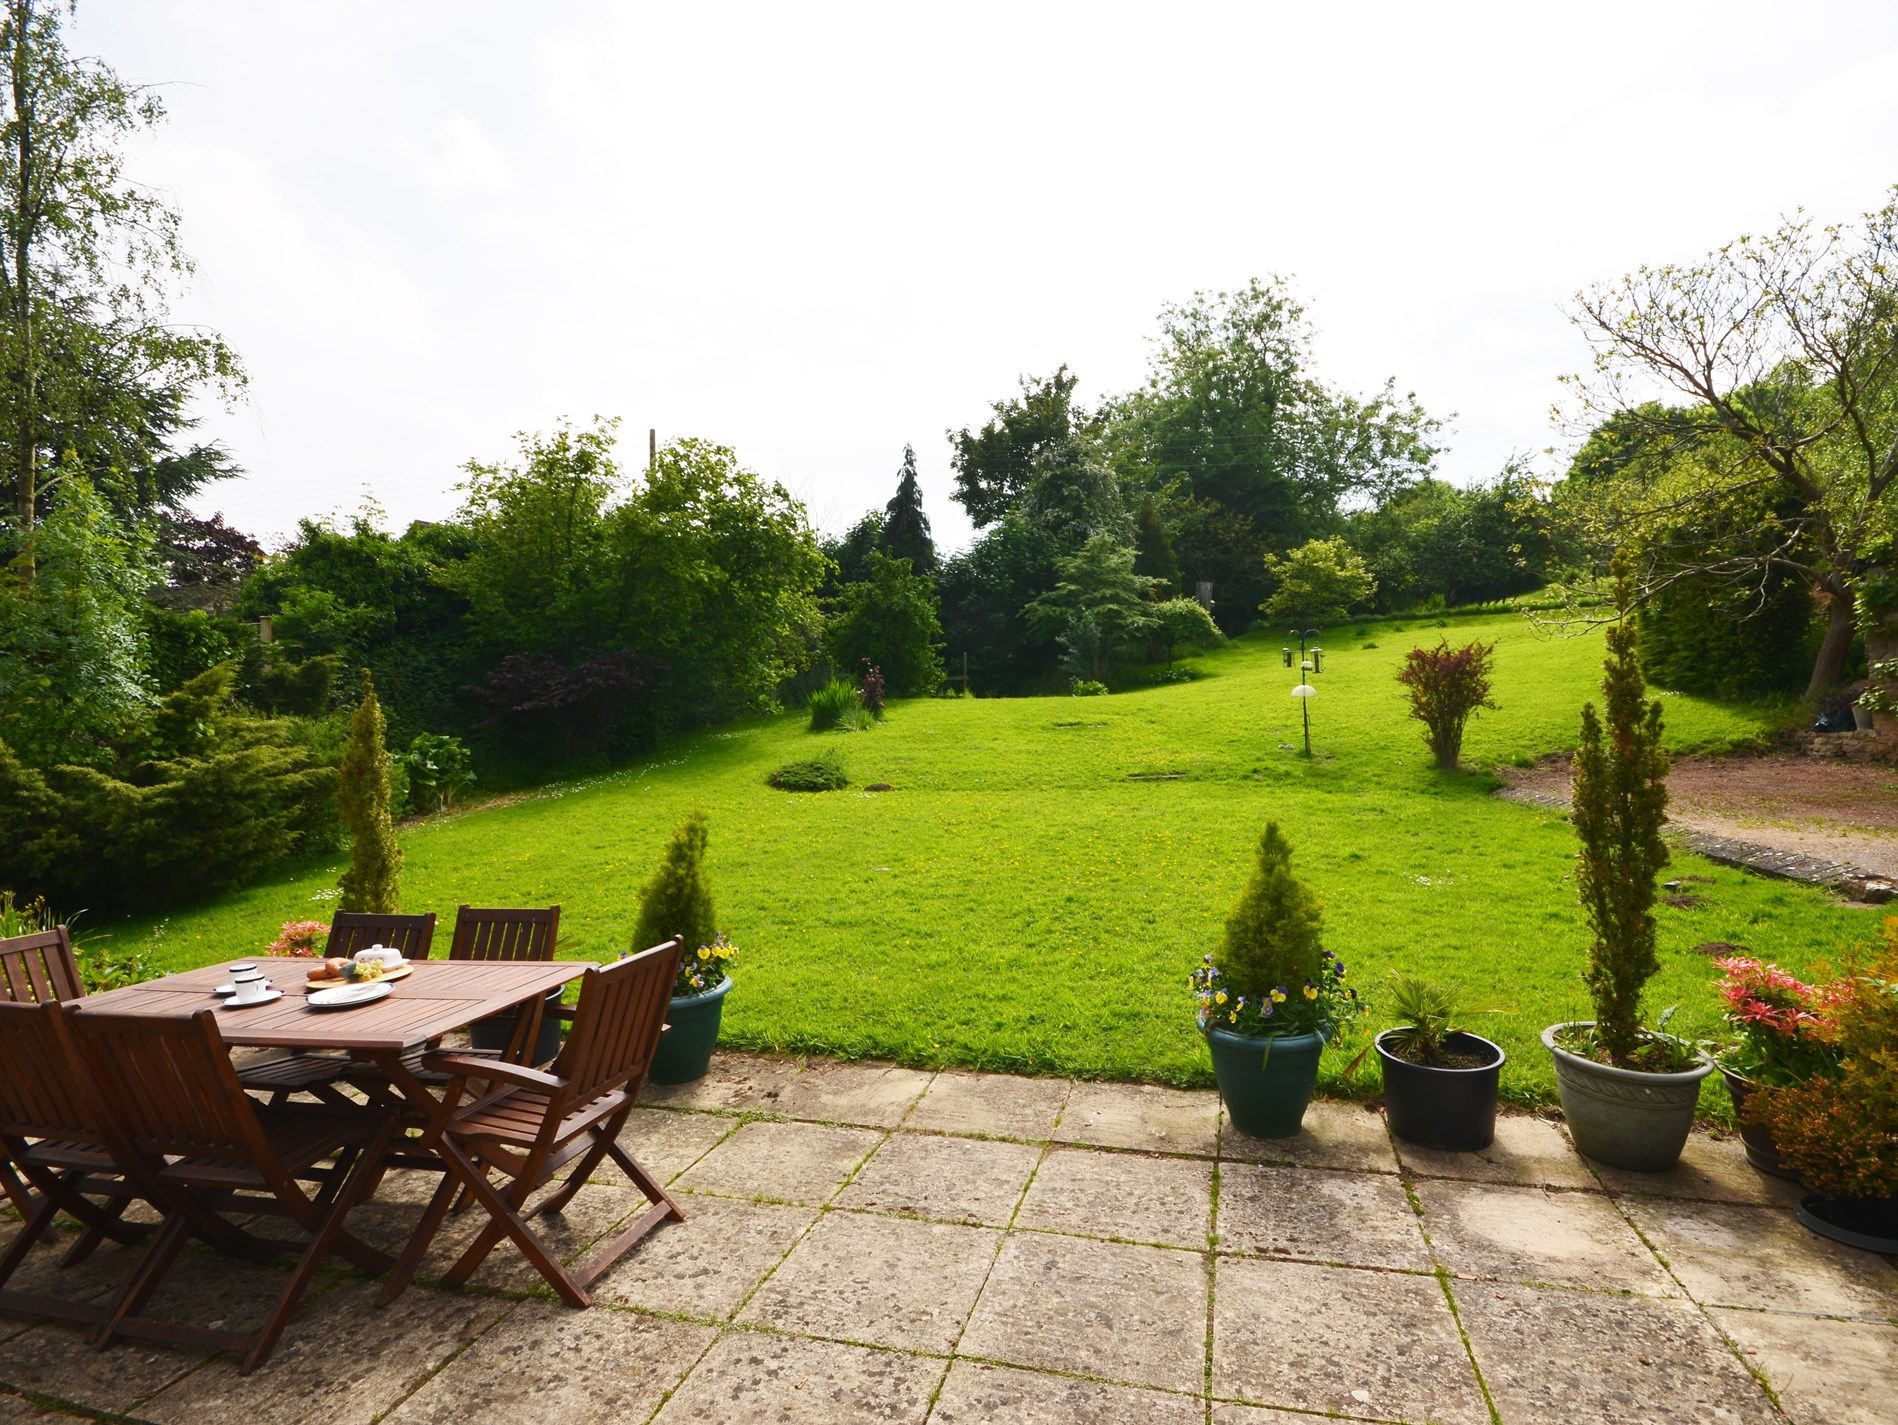 Patio and seating area with views over the garden and orchard